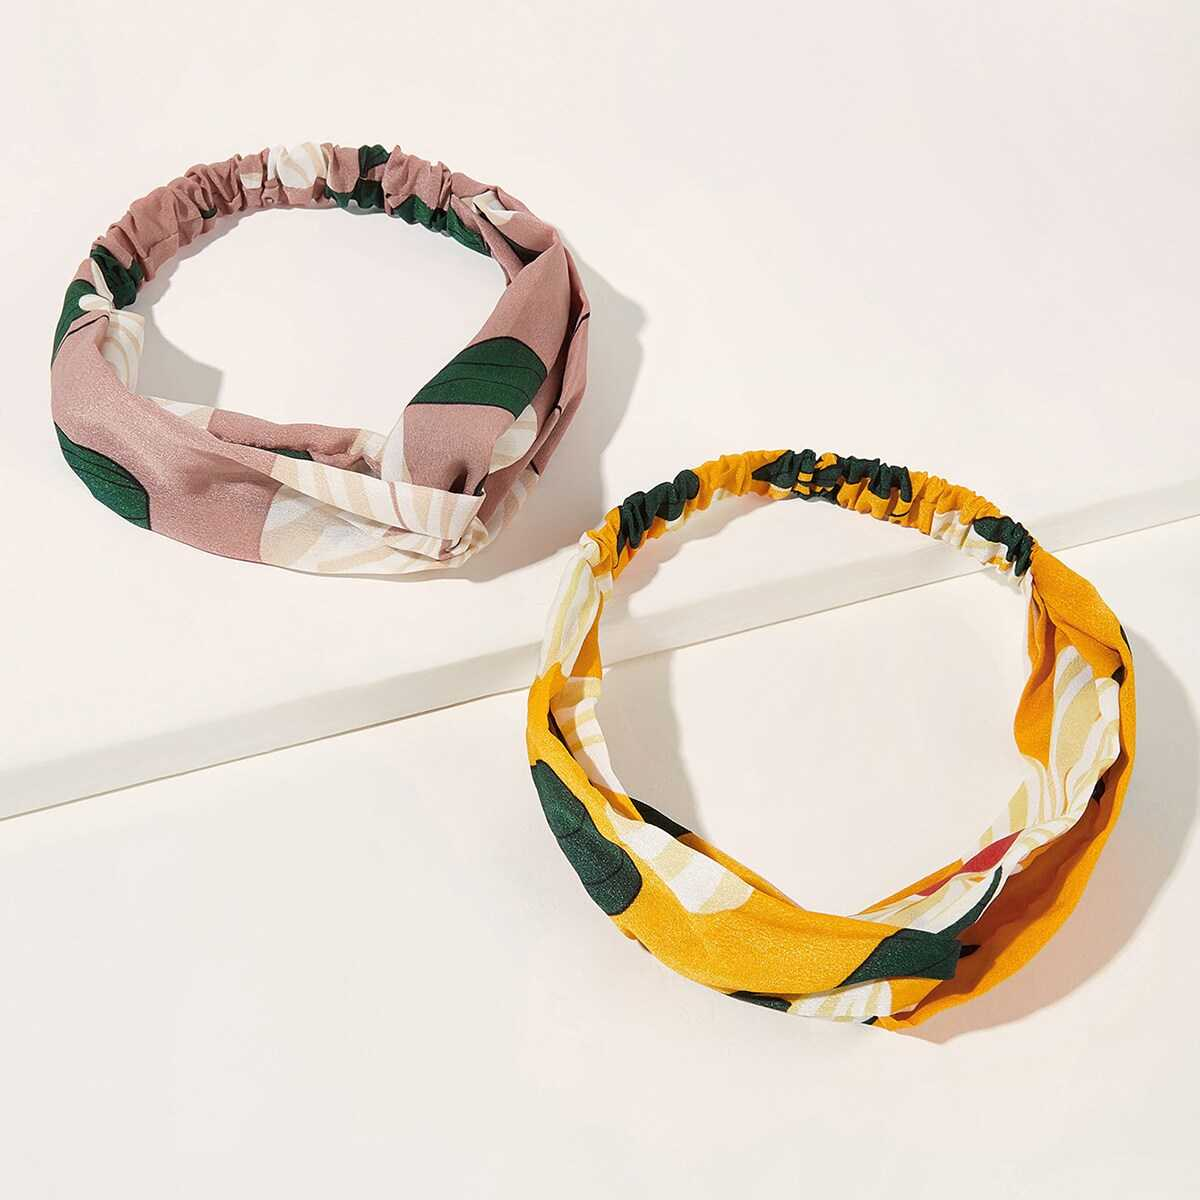 Floral Pattern Headband 2pcs in Multicolor by ROMWE on GOOFASH